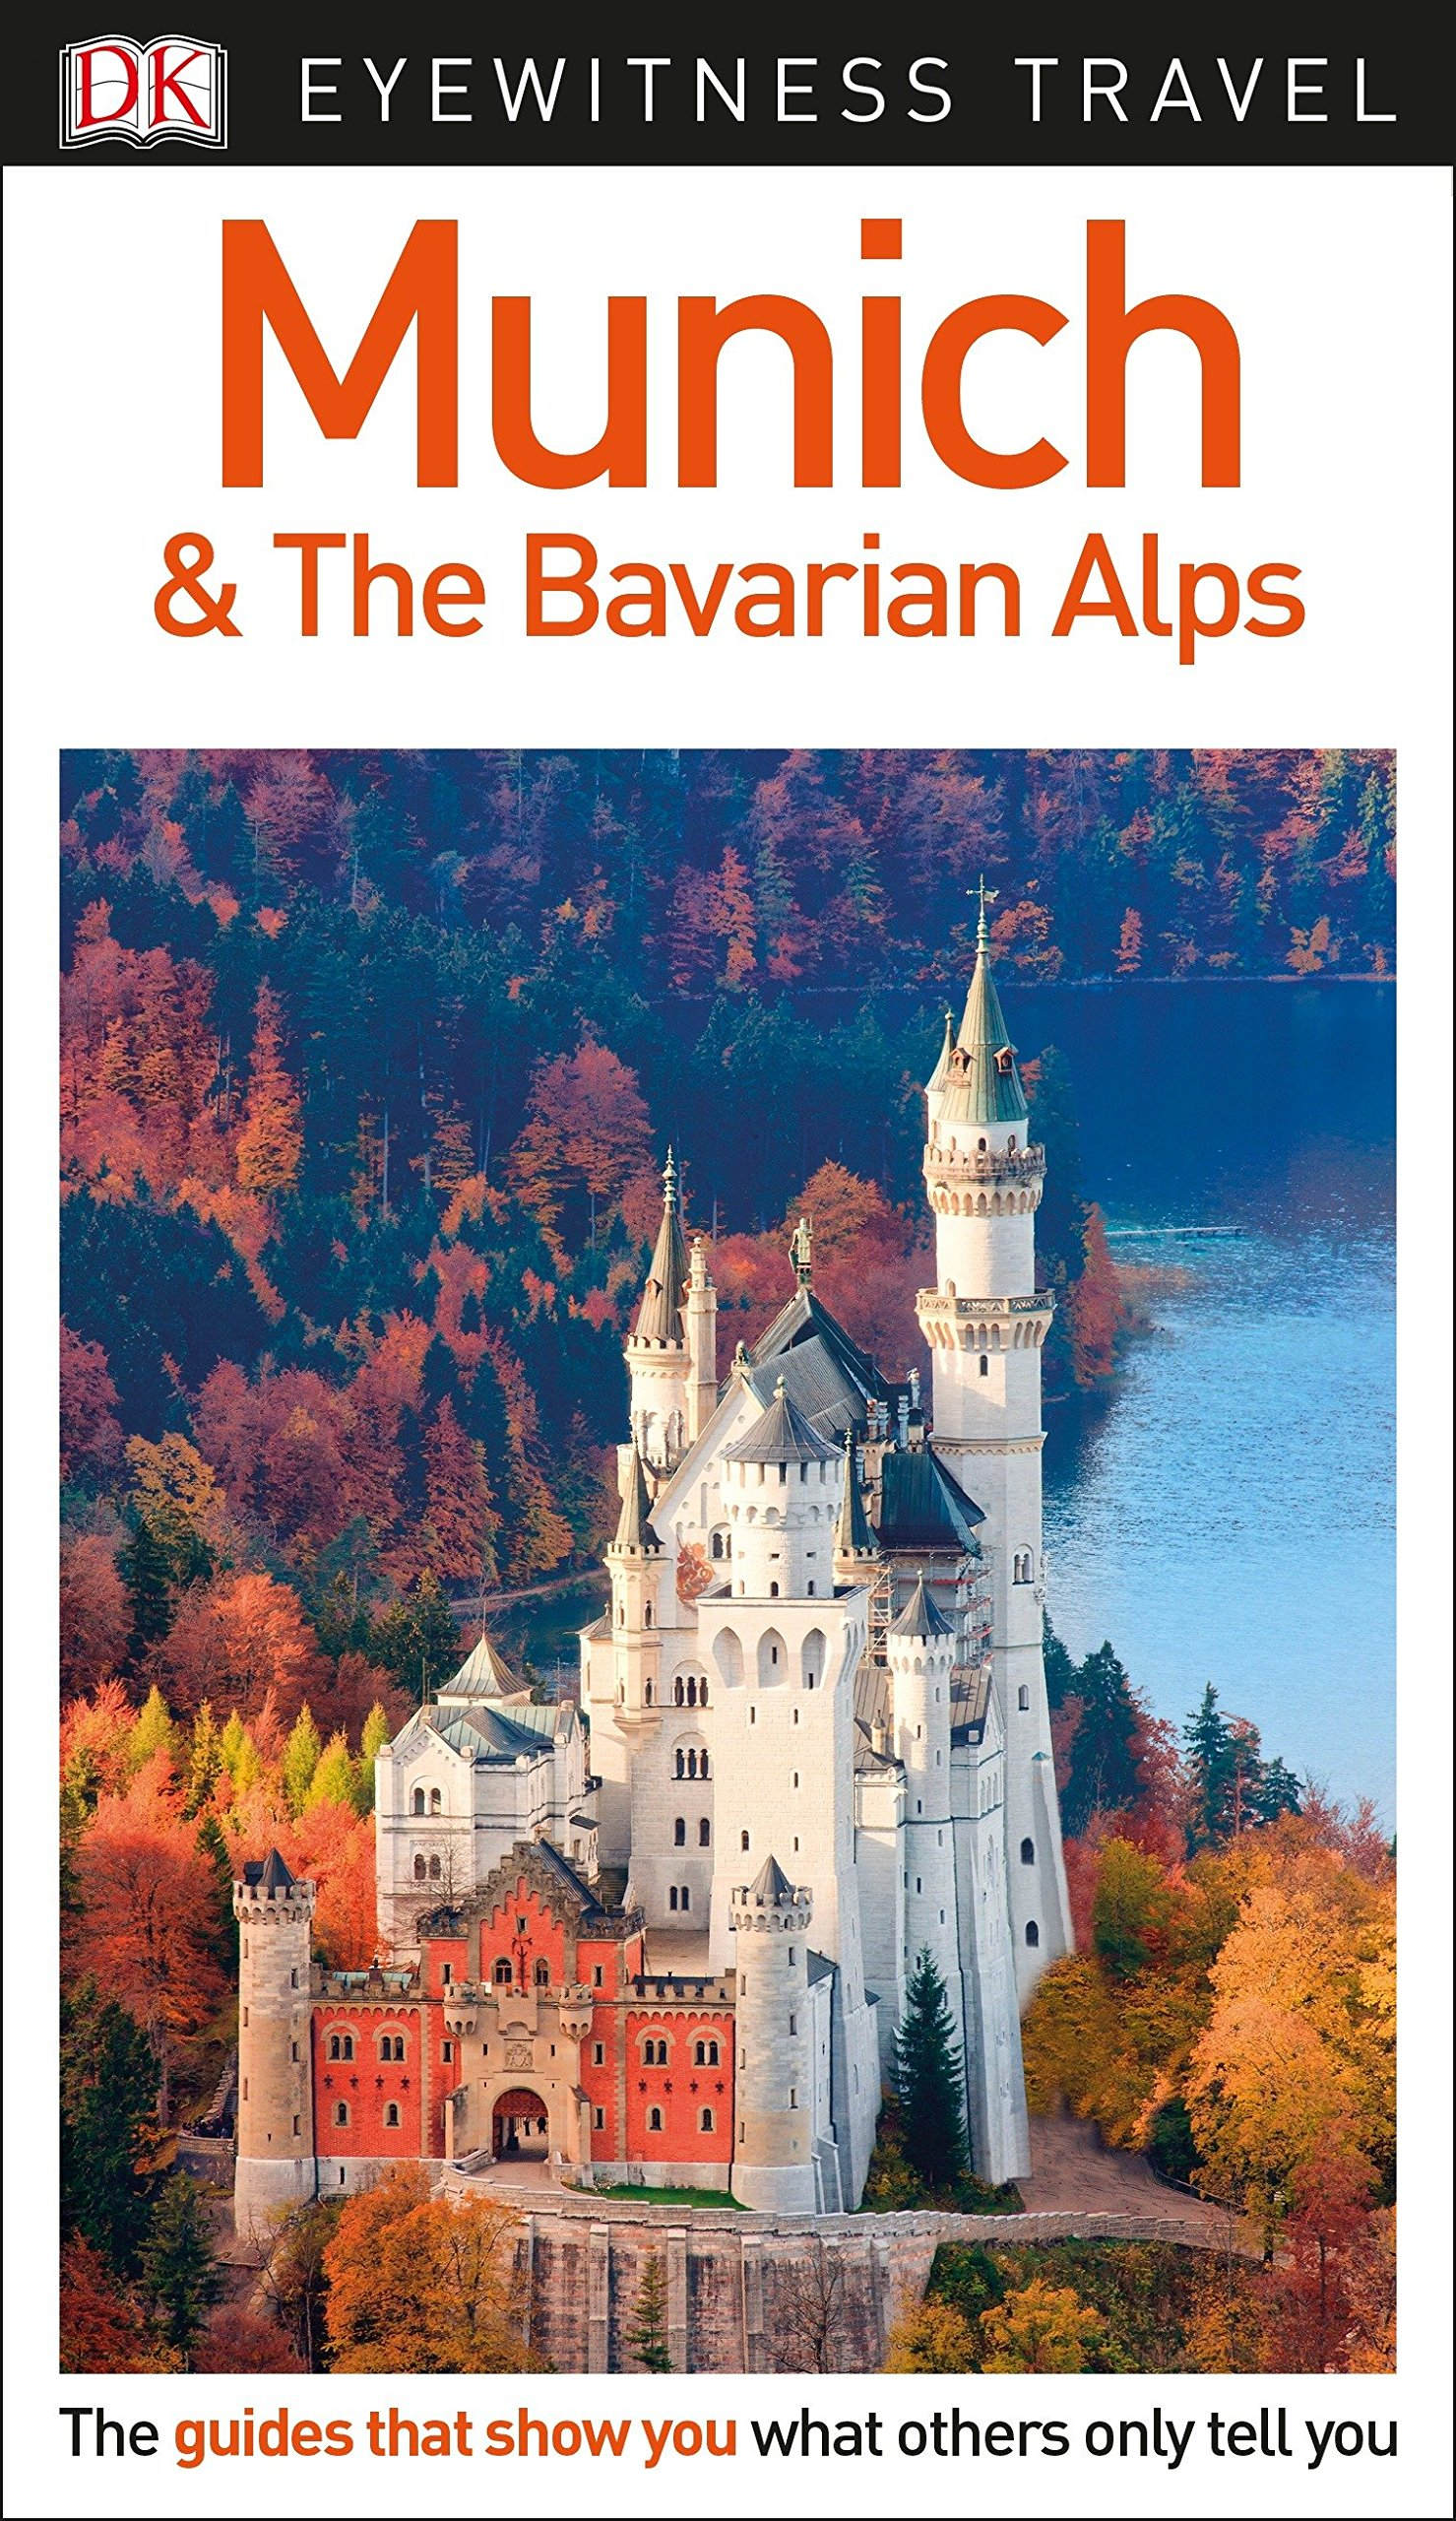 Download DK Eyewitness Munich And The Bavarian Alps (Travel Guide) 